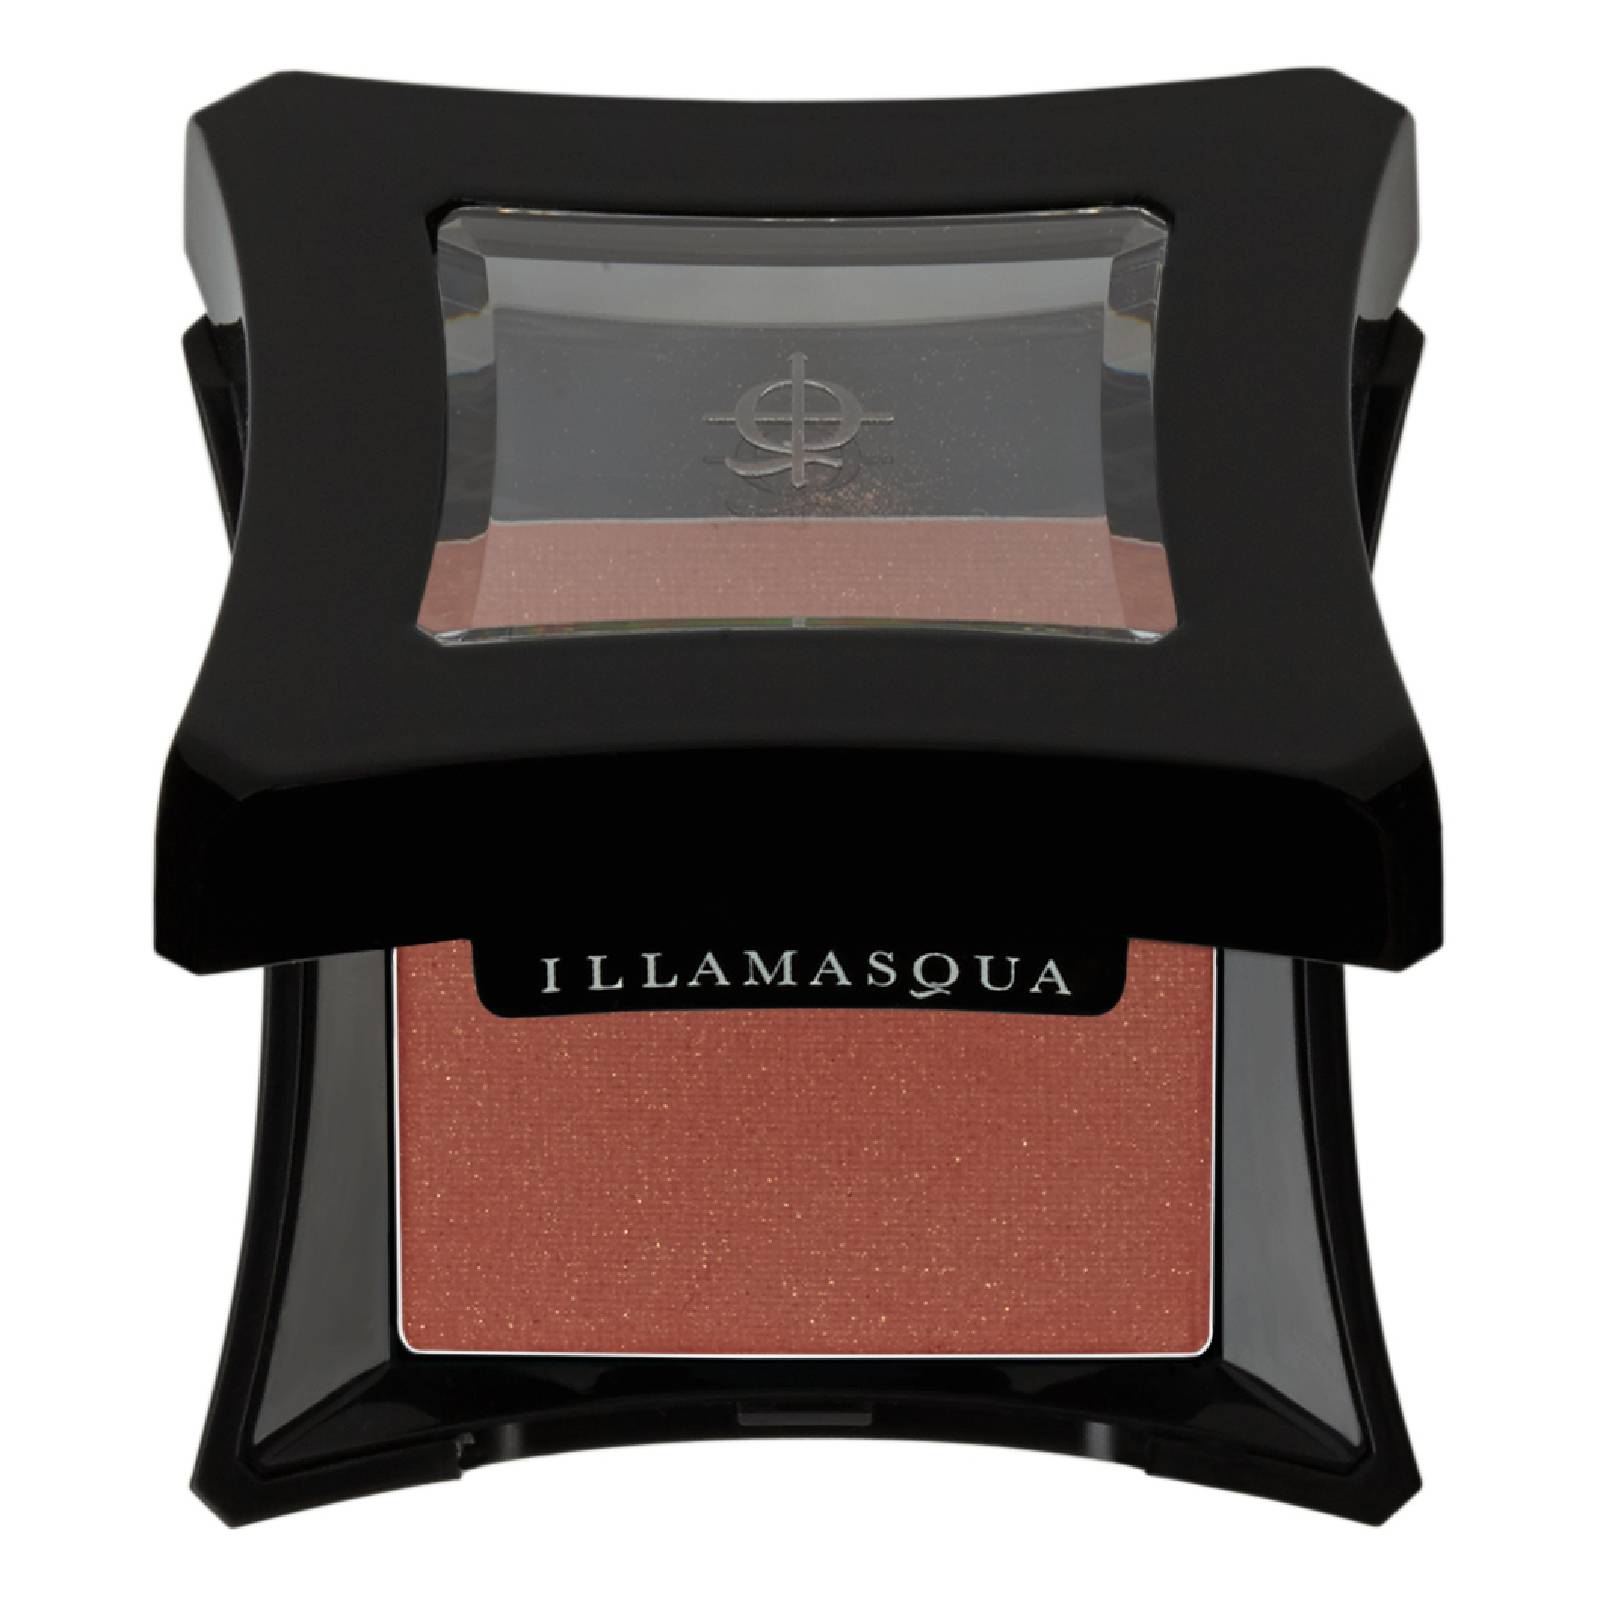 Illamasqua Powder Blusher 4.5g (Various Shades) - Allure